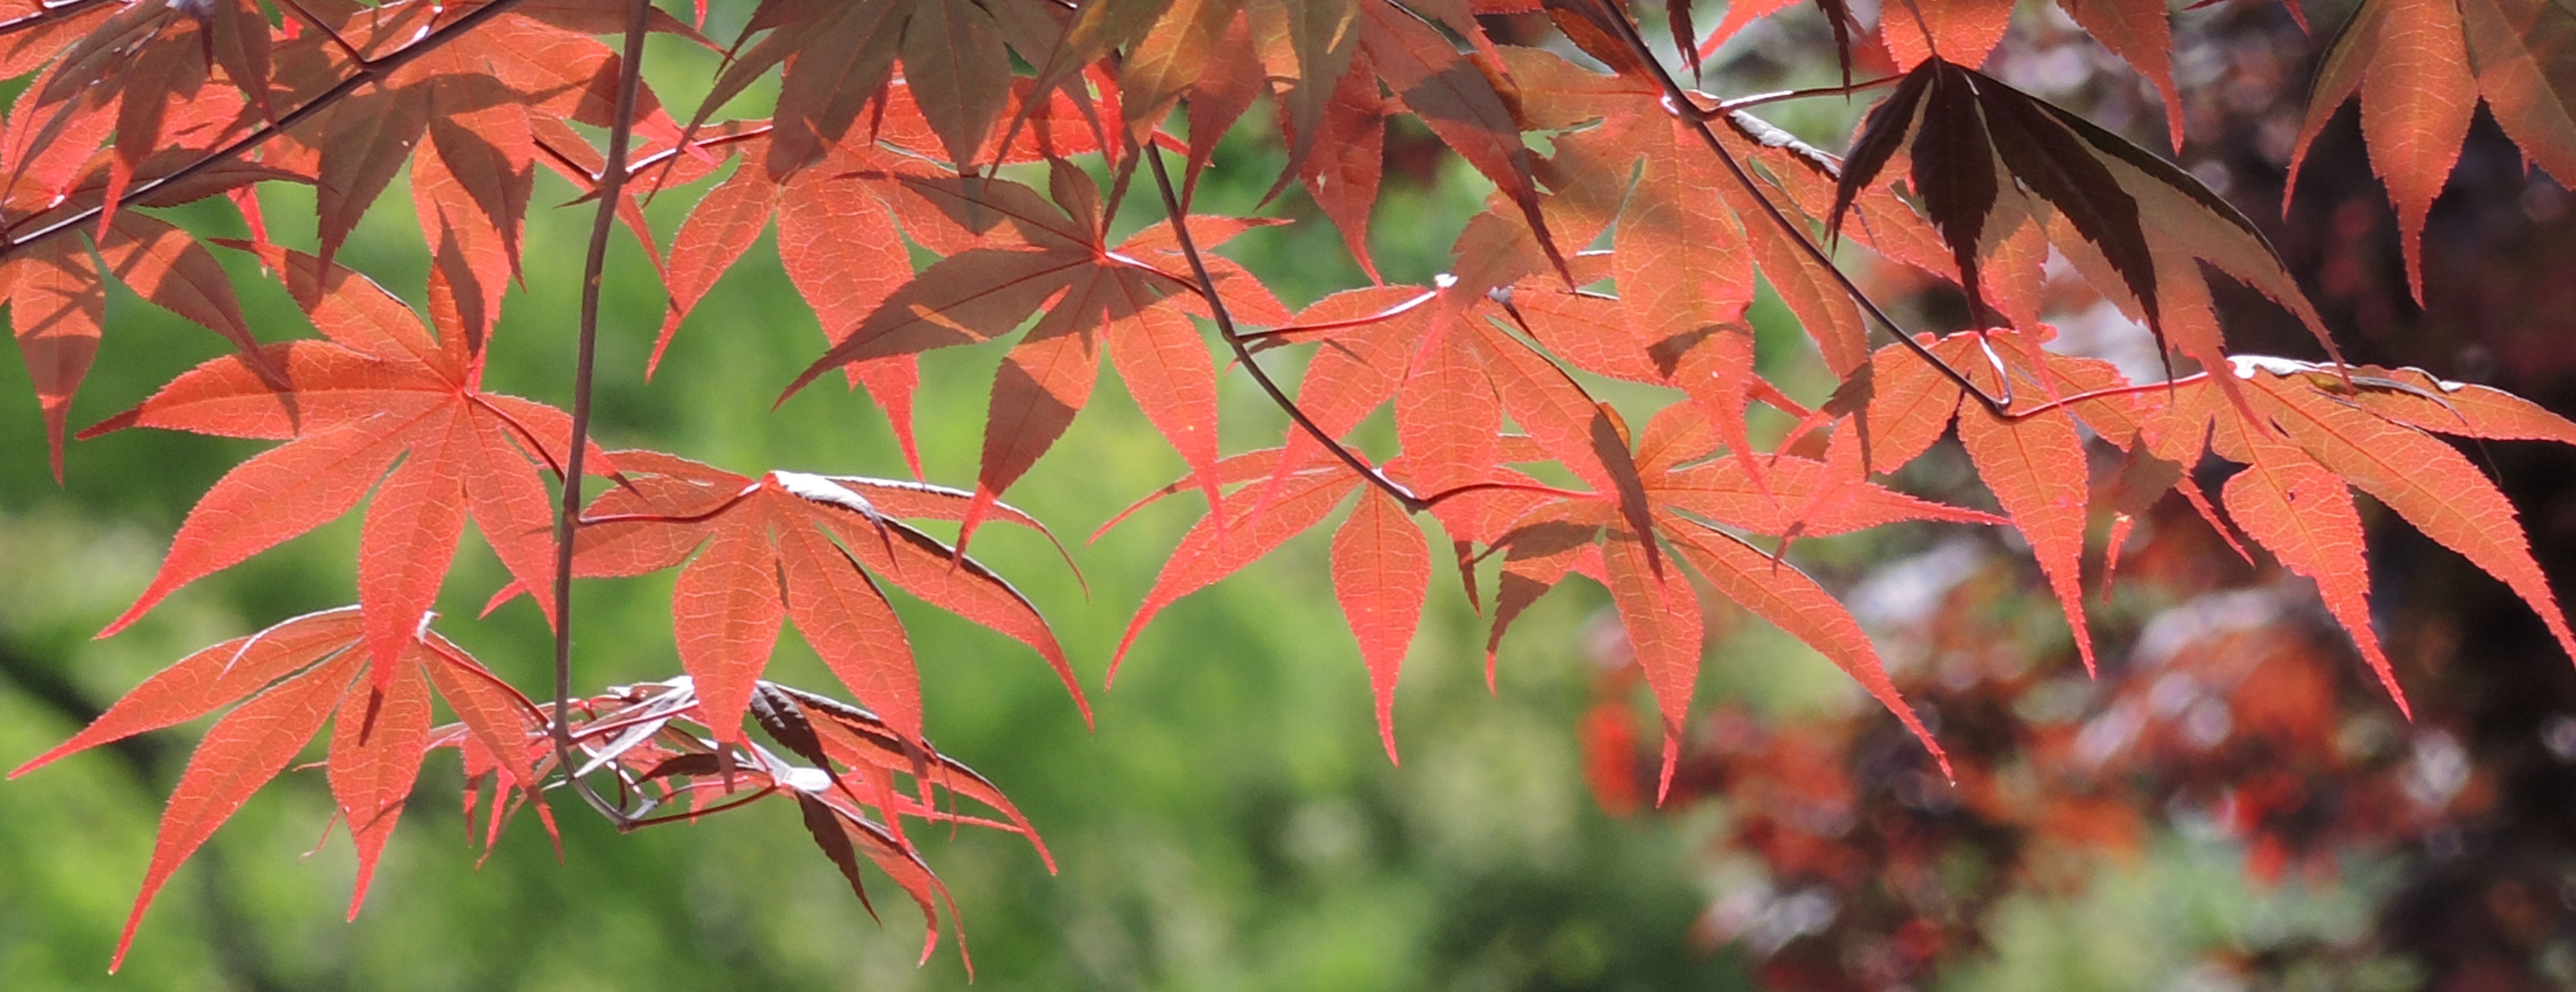 Acer in fall